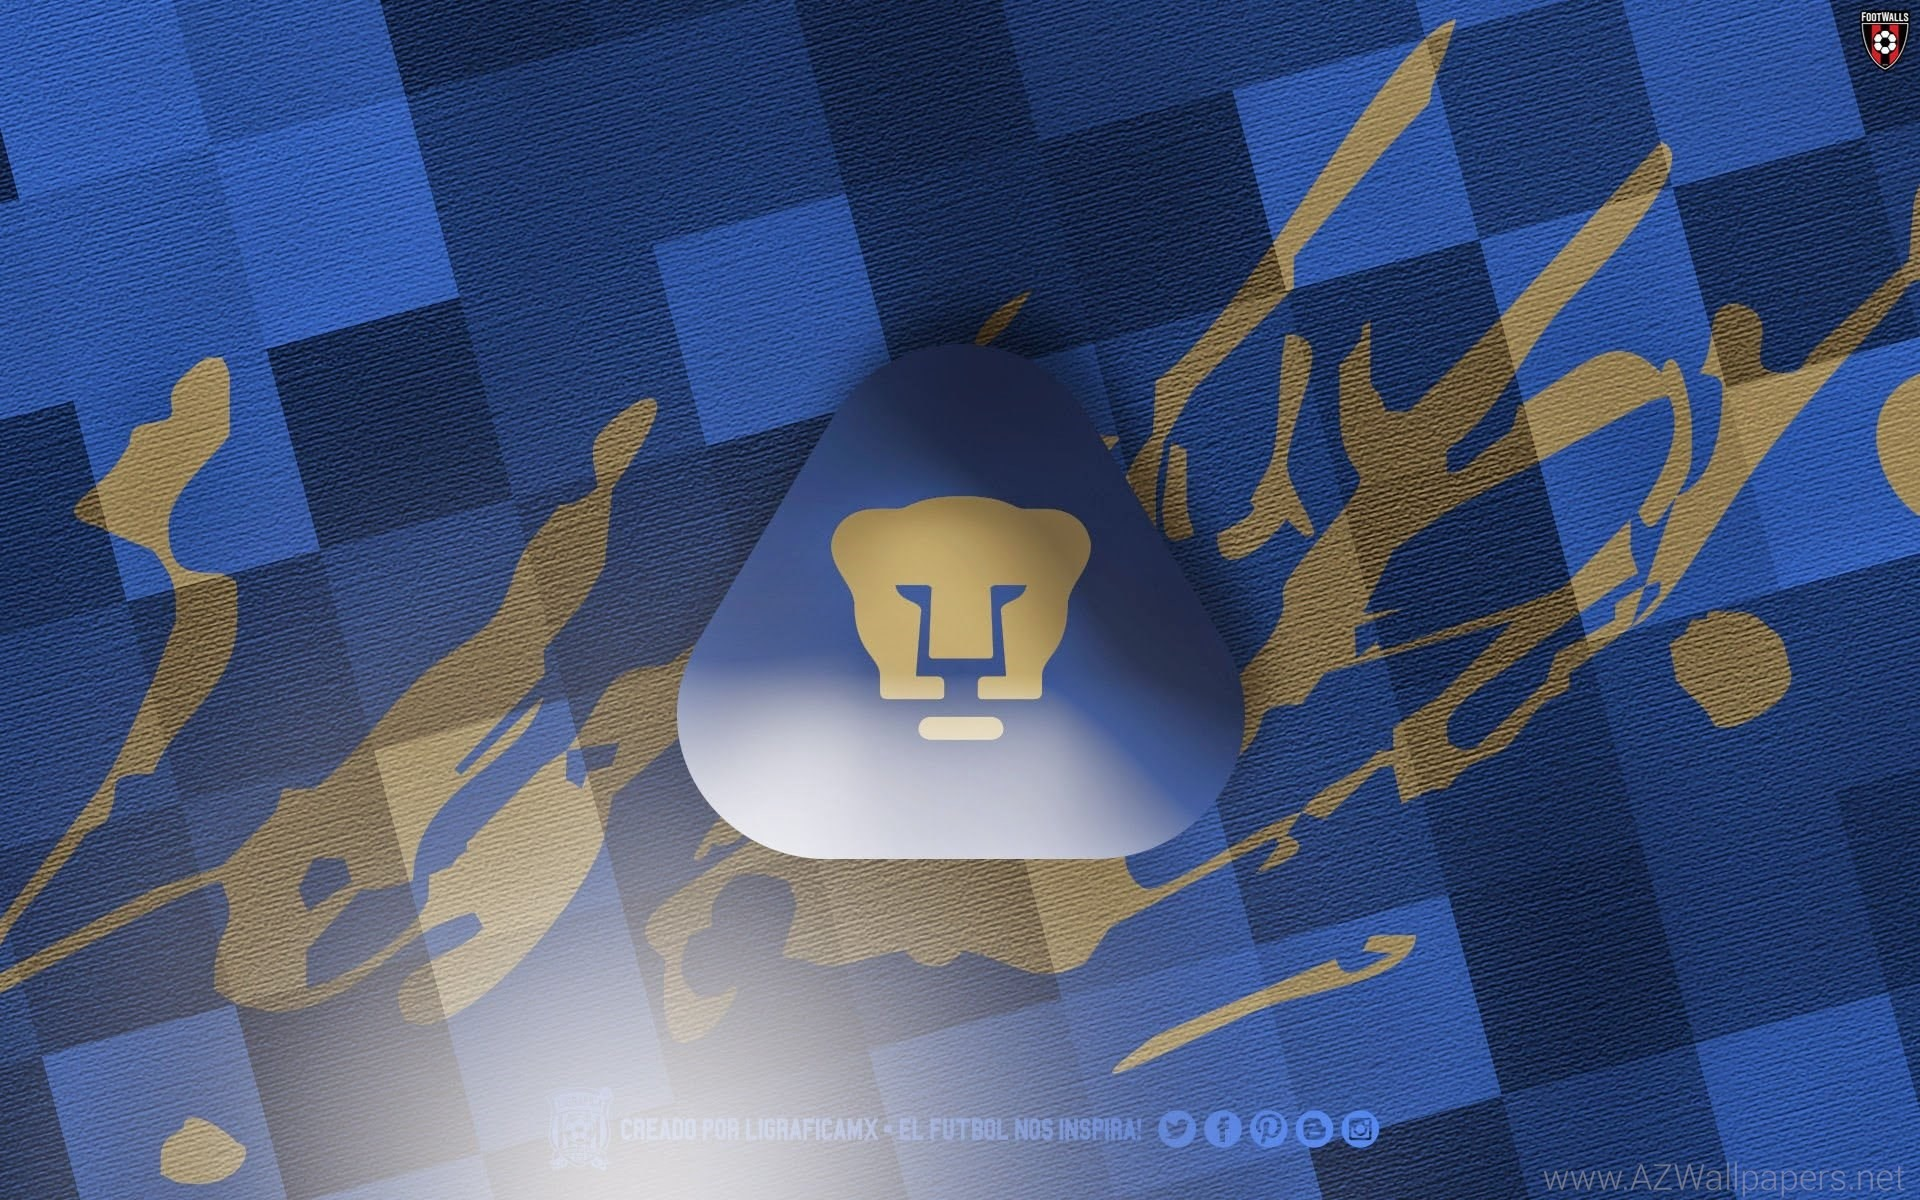 Pumas Unam Wallpapers 57 Images